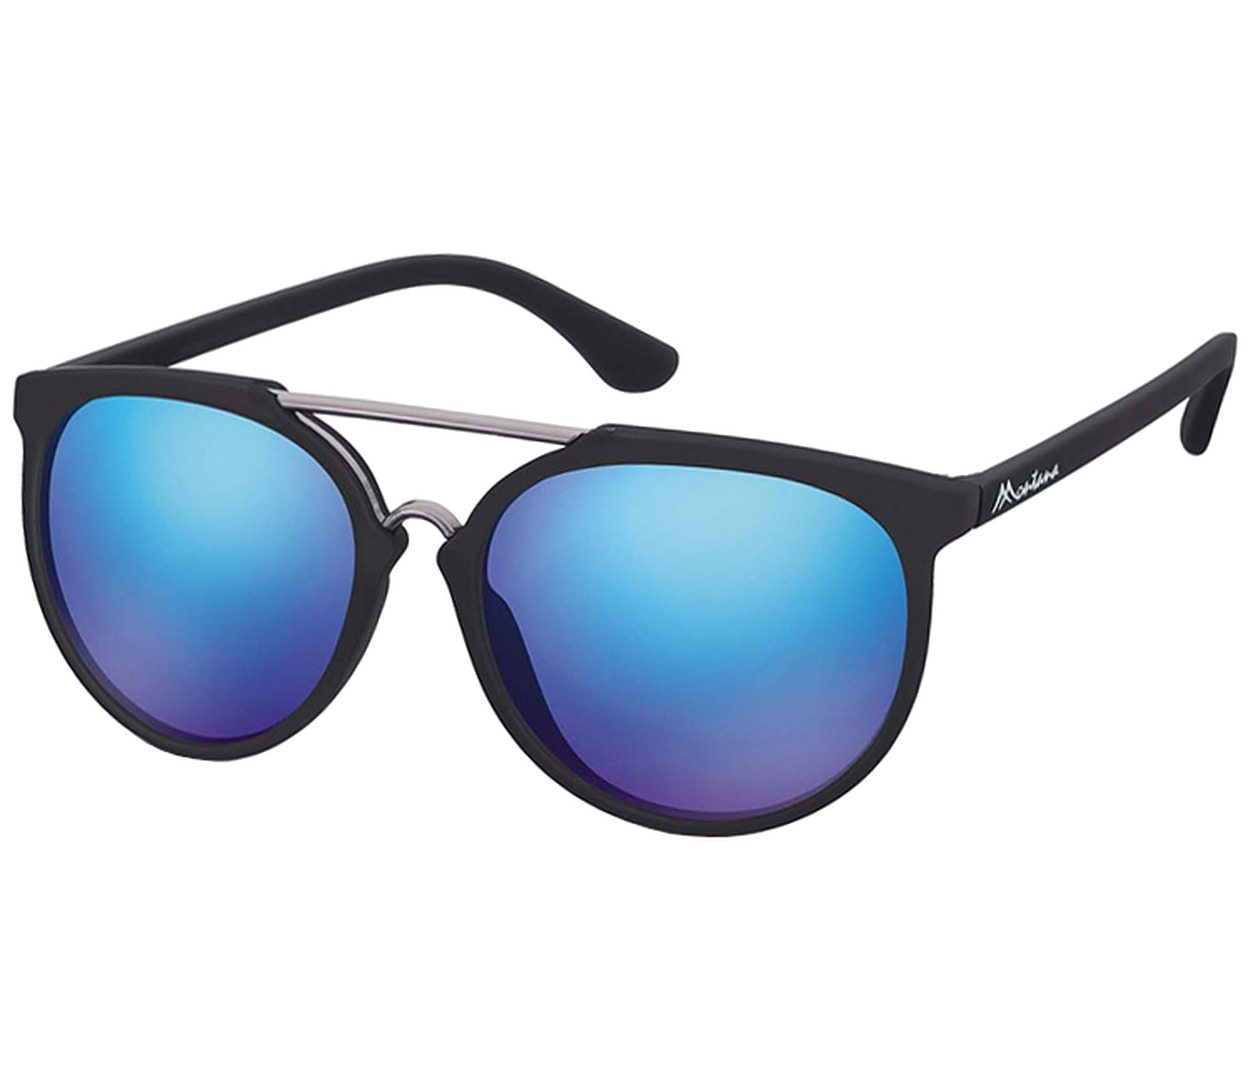 Main Image (Angle) - Java (Black) Retro Sunglasses